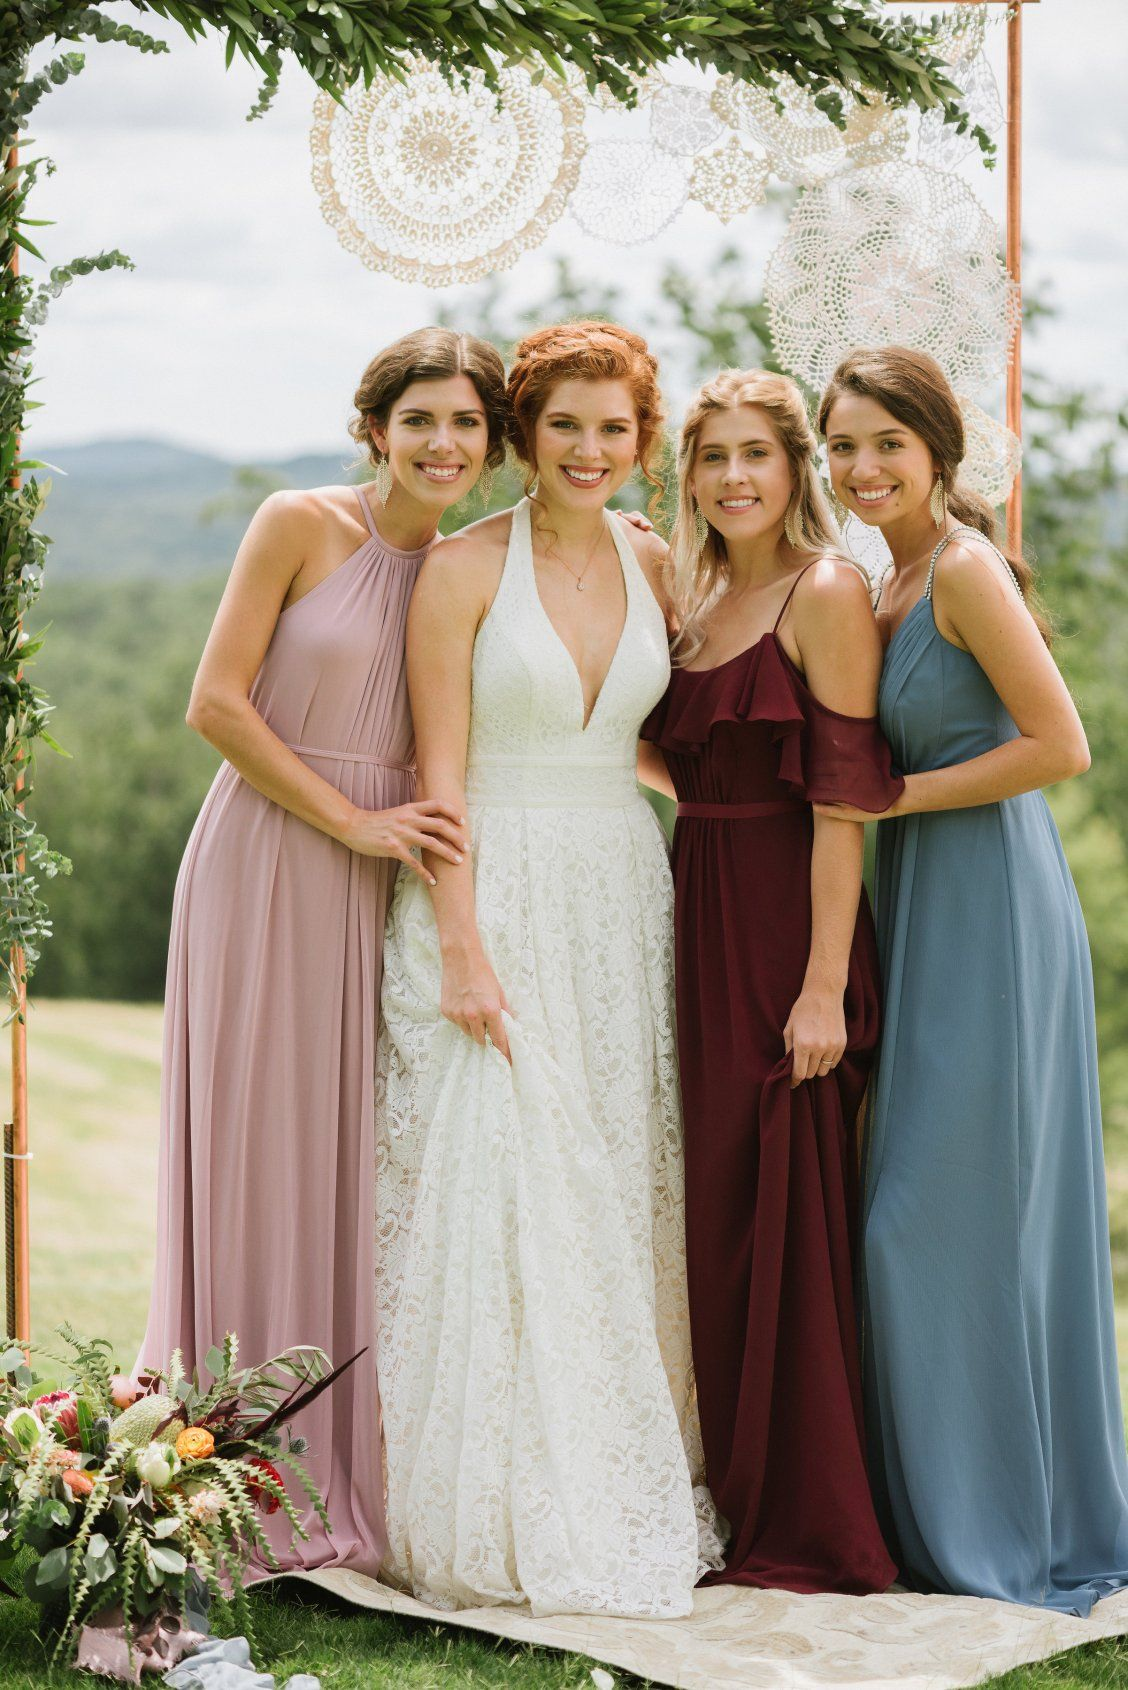 e361f71ec68 A bohemian wedding calls for flowy bridesmaid dresses and dusty wedding  colors! Shop this entire bridal party from David s Bridal!